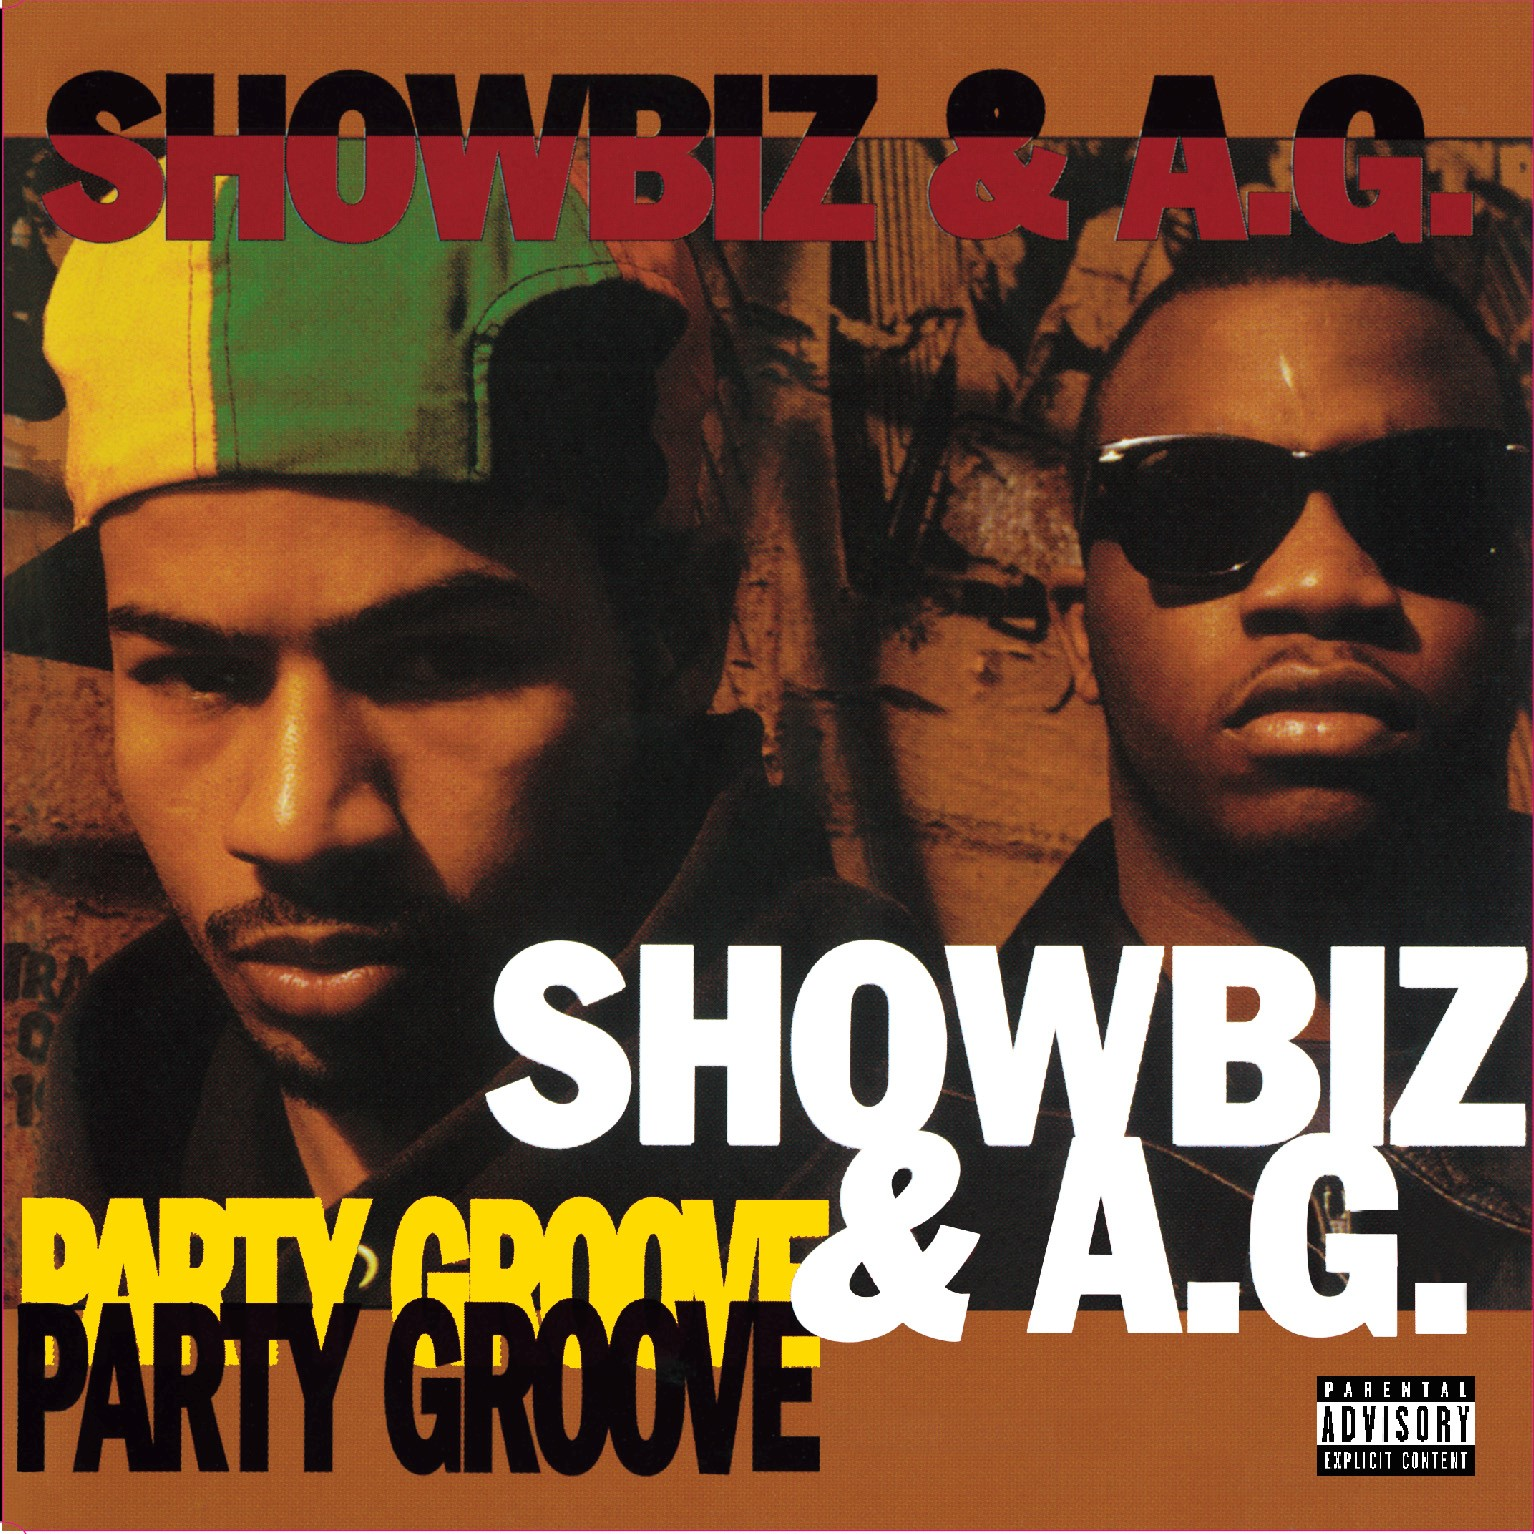 034_Showbiz & A.G.	Party Groove(instrumental) / Party Groove(bass mix)